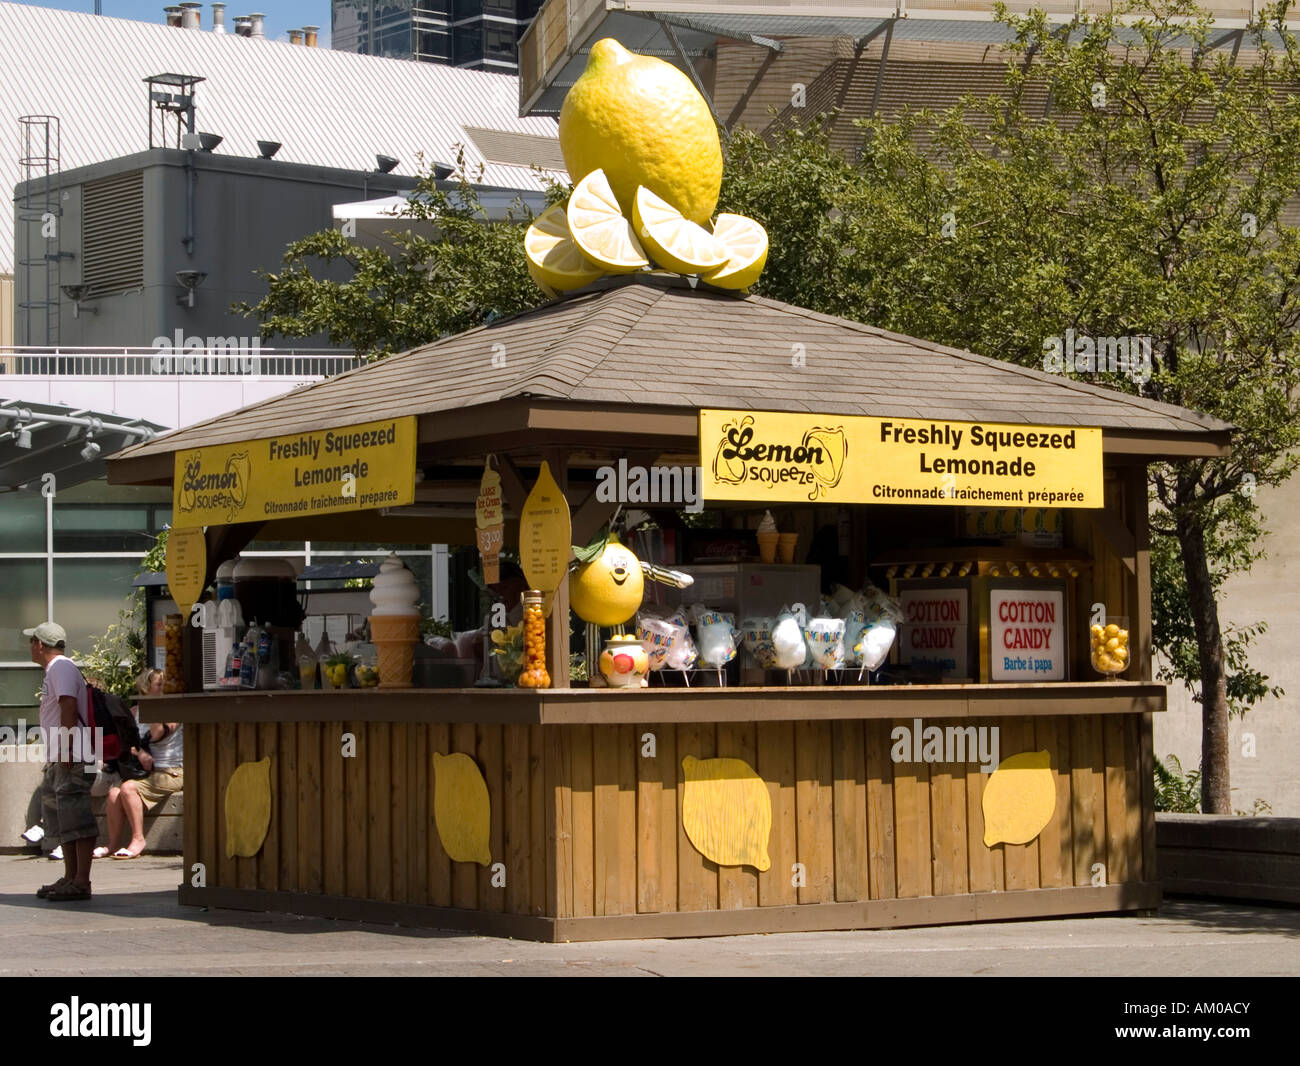 A freshly squeezed lemonade stand selling refreshments in for Lemon shaped lemonade stand